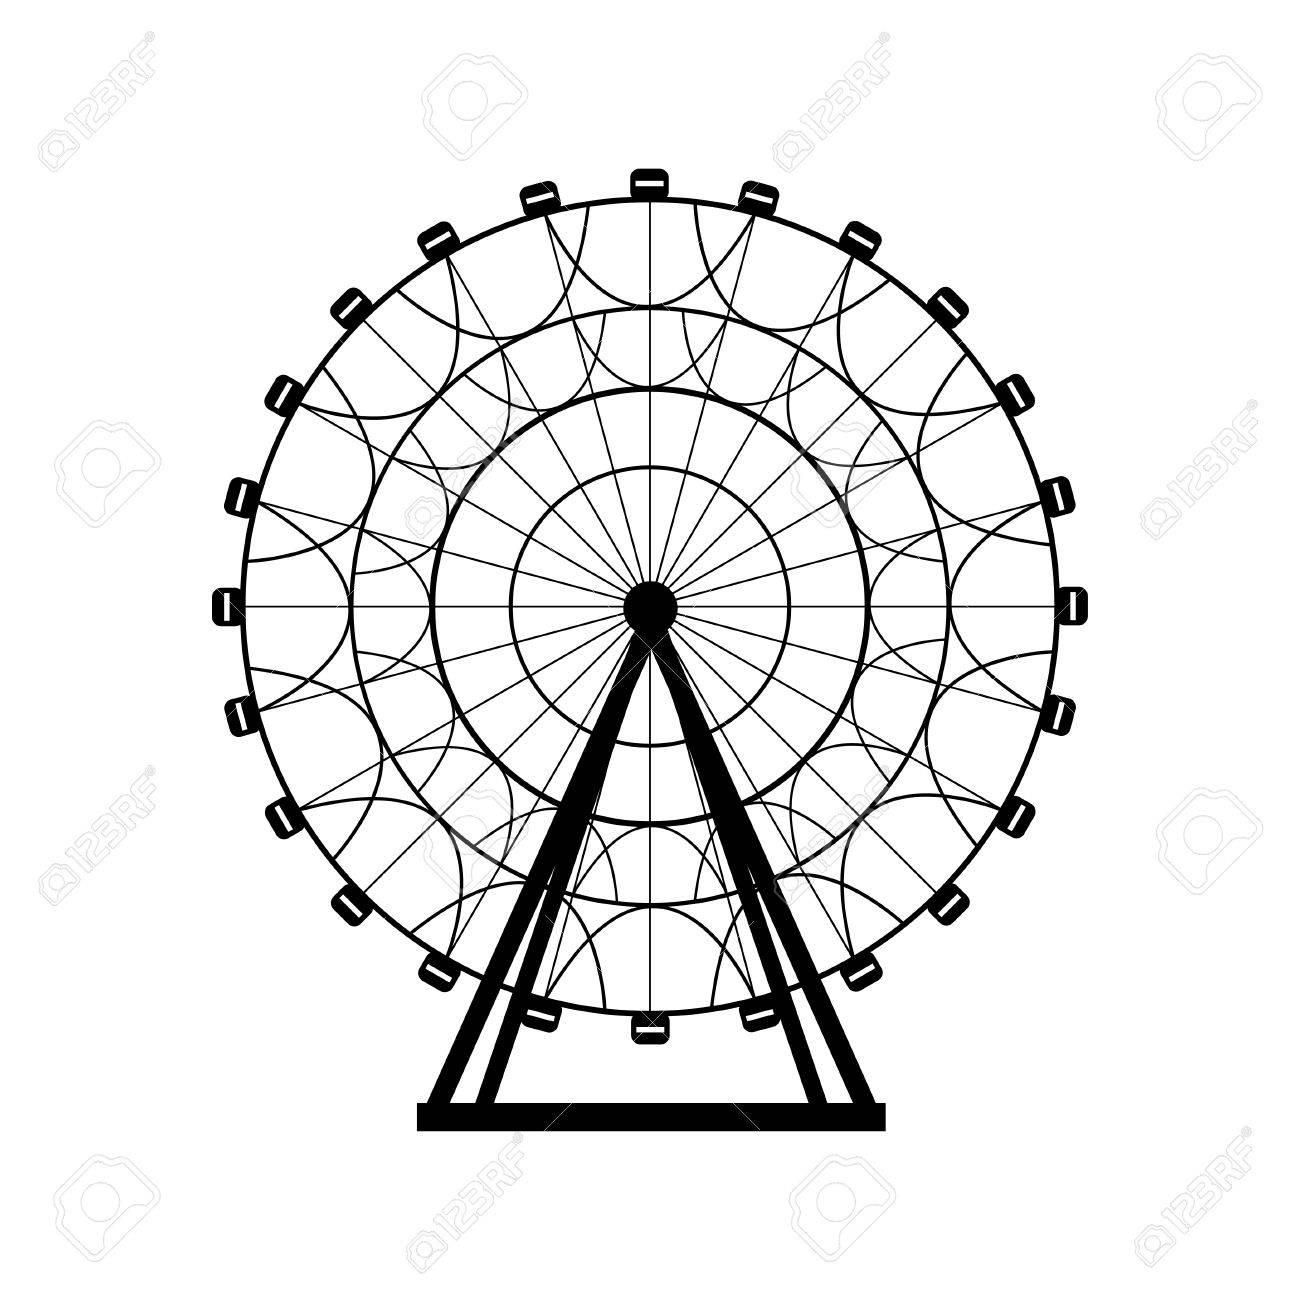 Ferris Wheel Silhouette Circle Carnival Funfair Background Carousel Royalty Free Cliparts Vectors And Stock Illustration Image 57893977